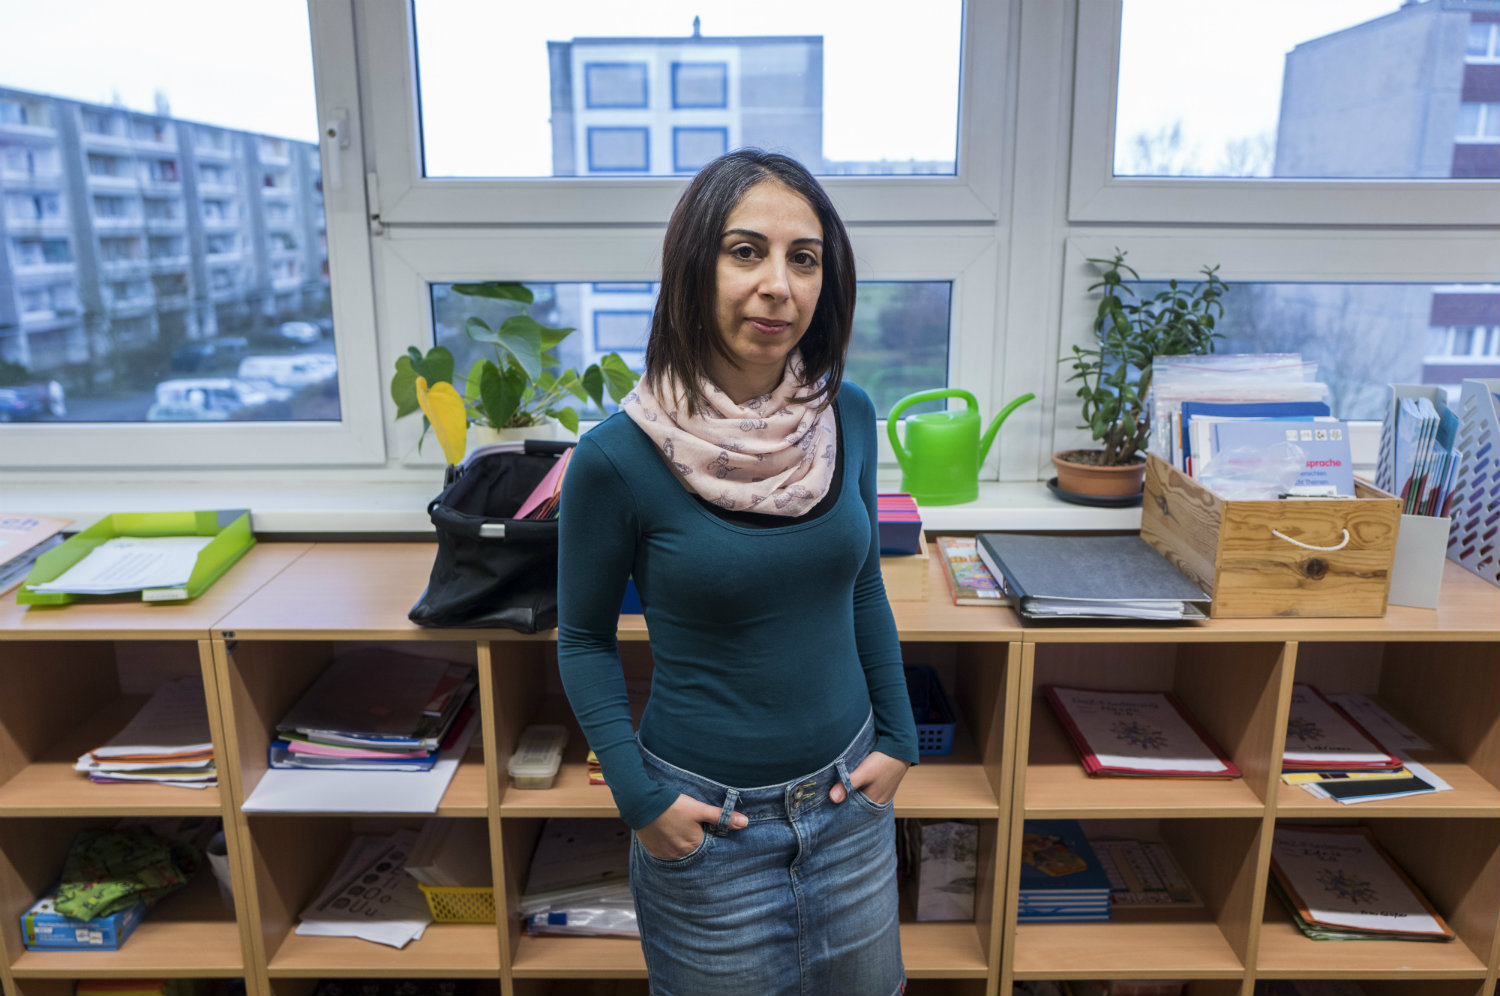 Syrian refugee teacher starts job at German school